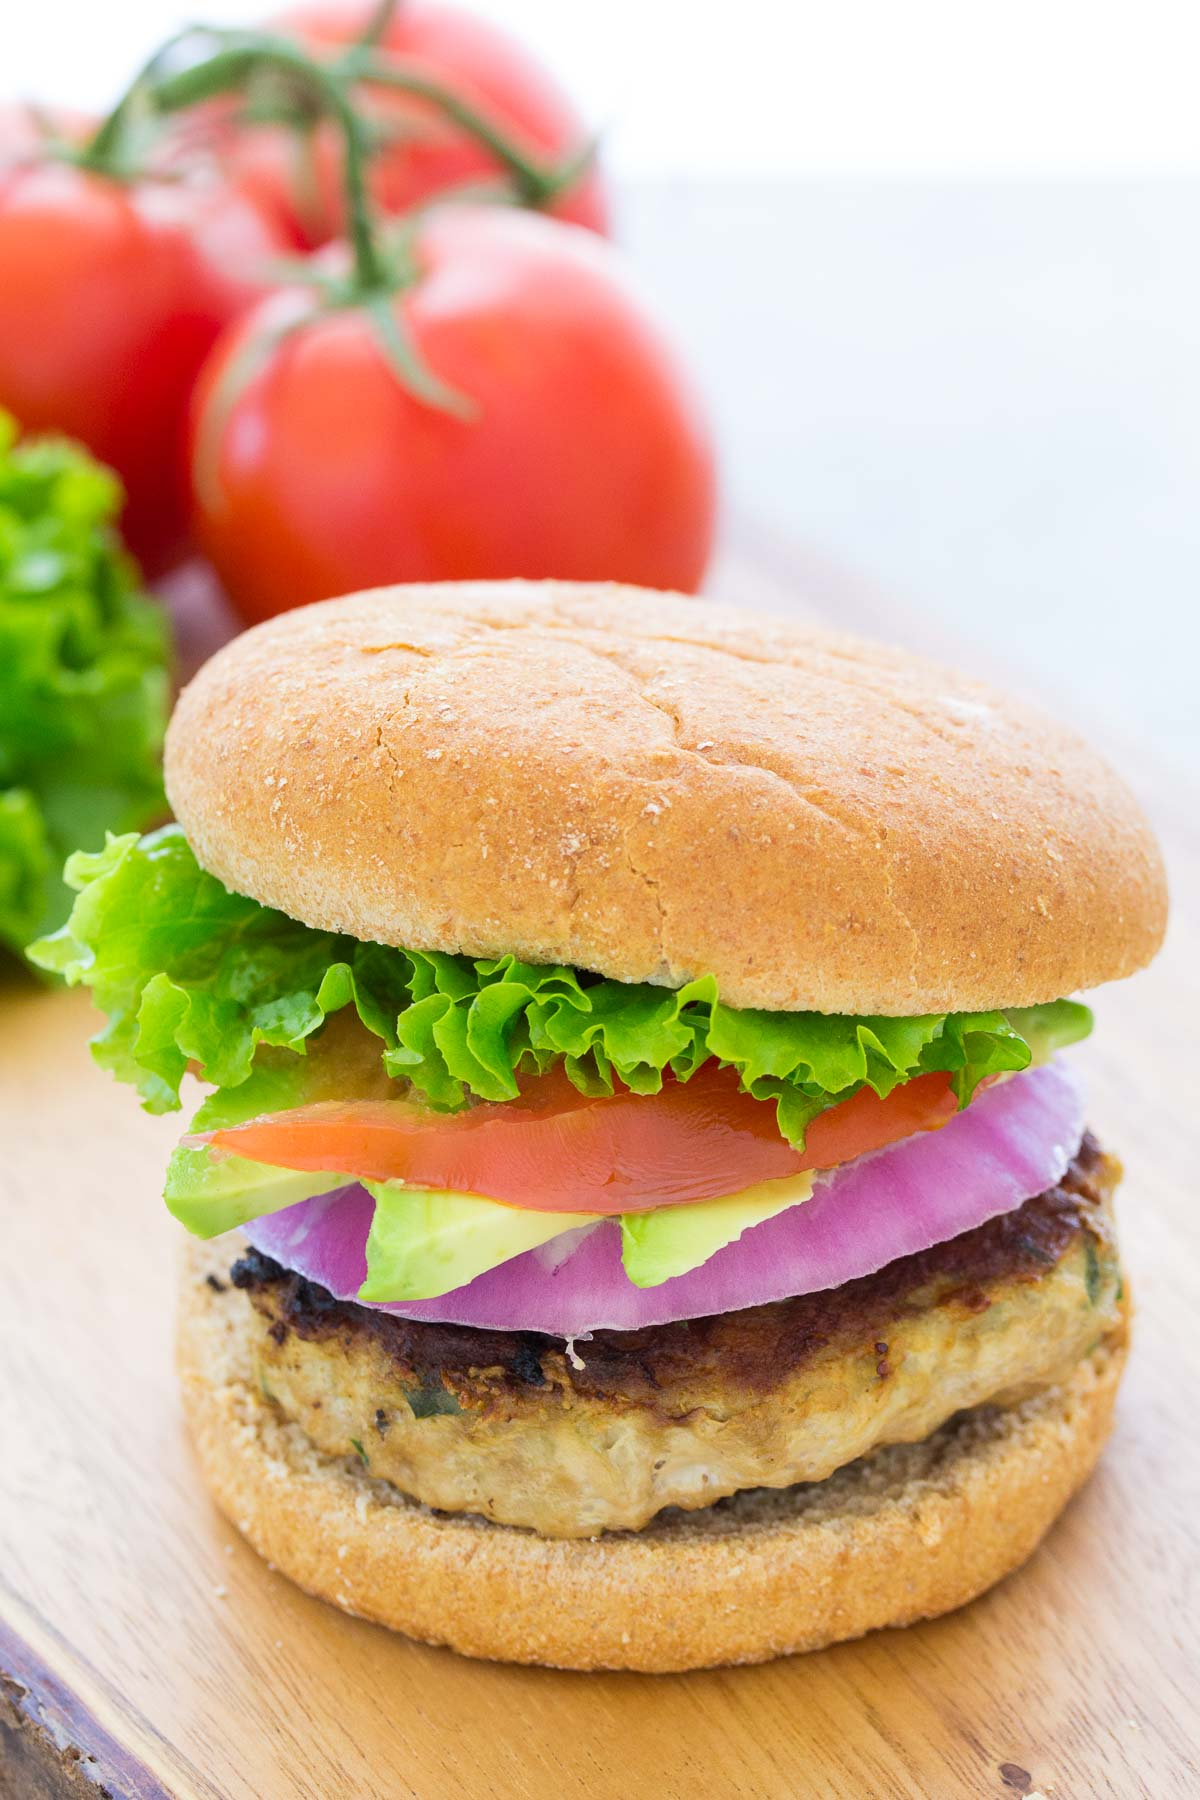 turkey burger with red onion, avocado, tomato and lettuce